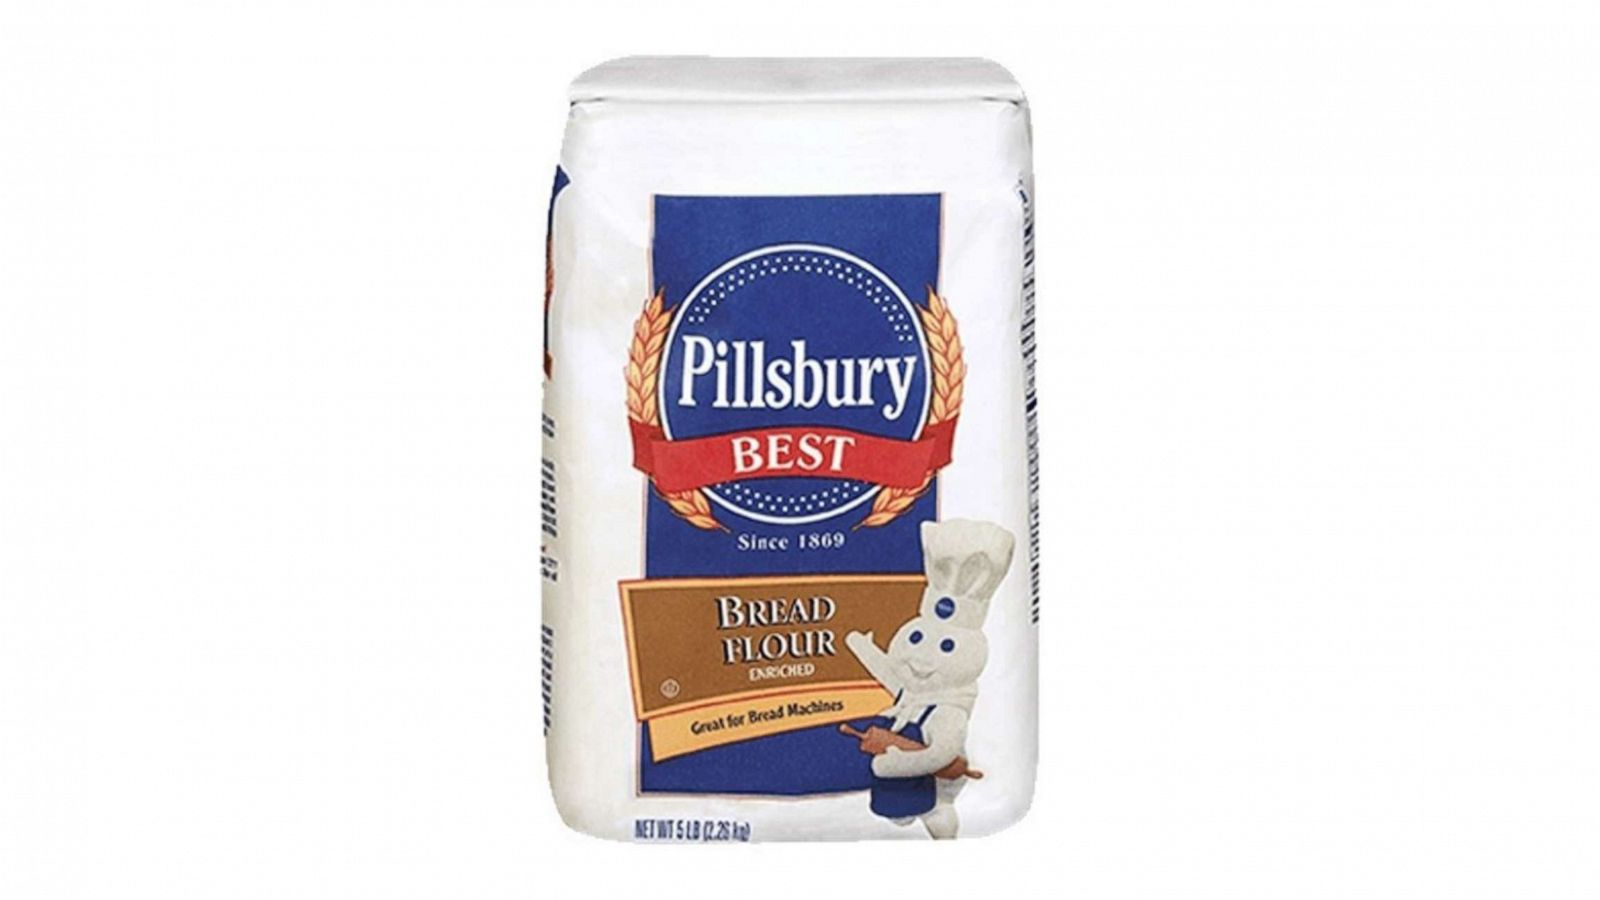 Best Rated Bread Machines 2020 More than 4,600 cases of Pillsbury flour recalled due to possible